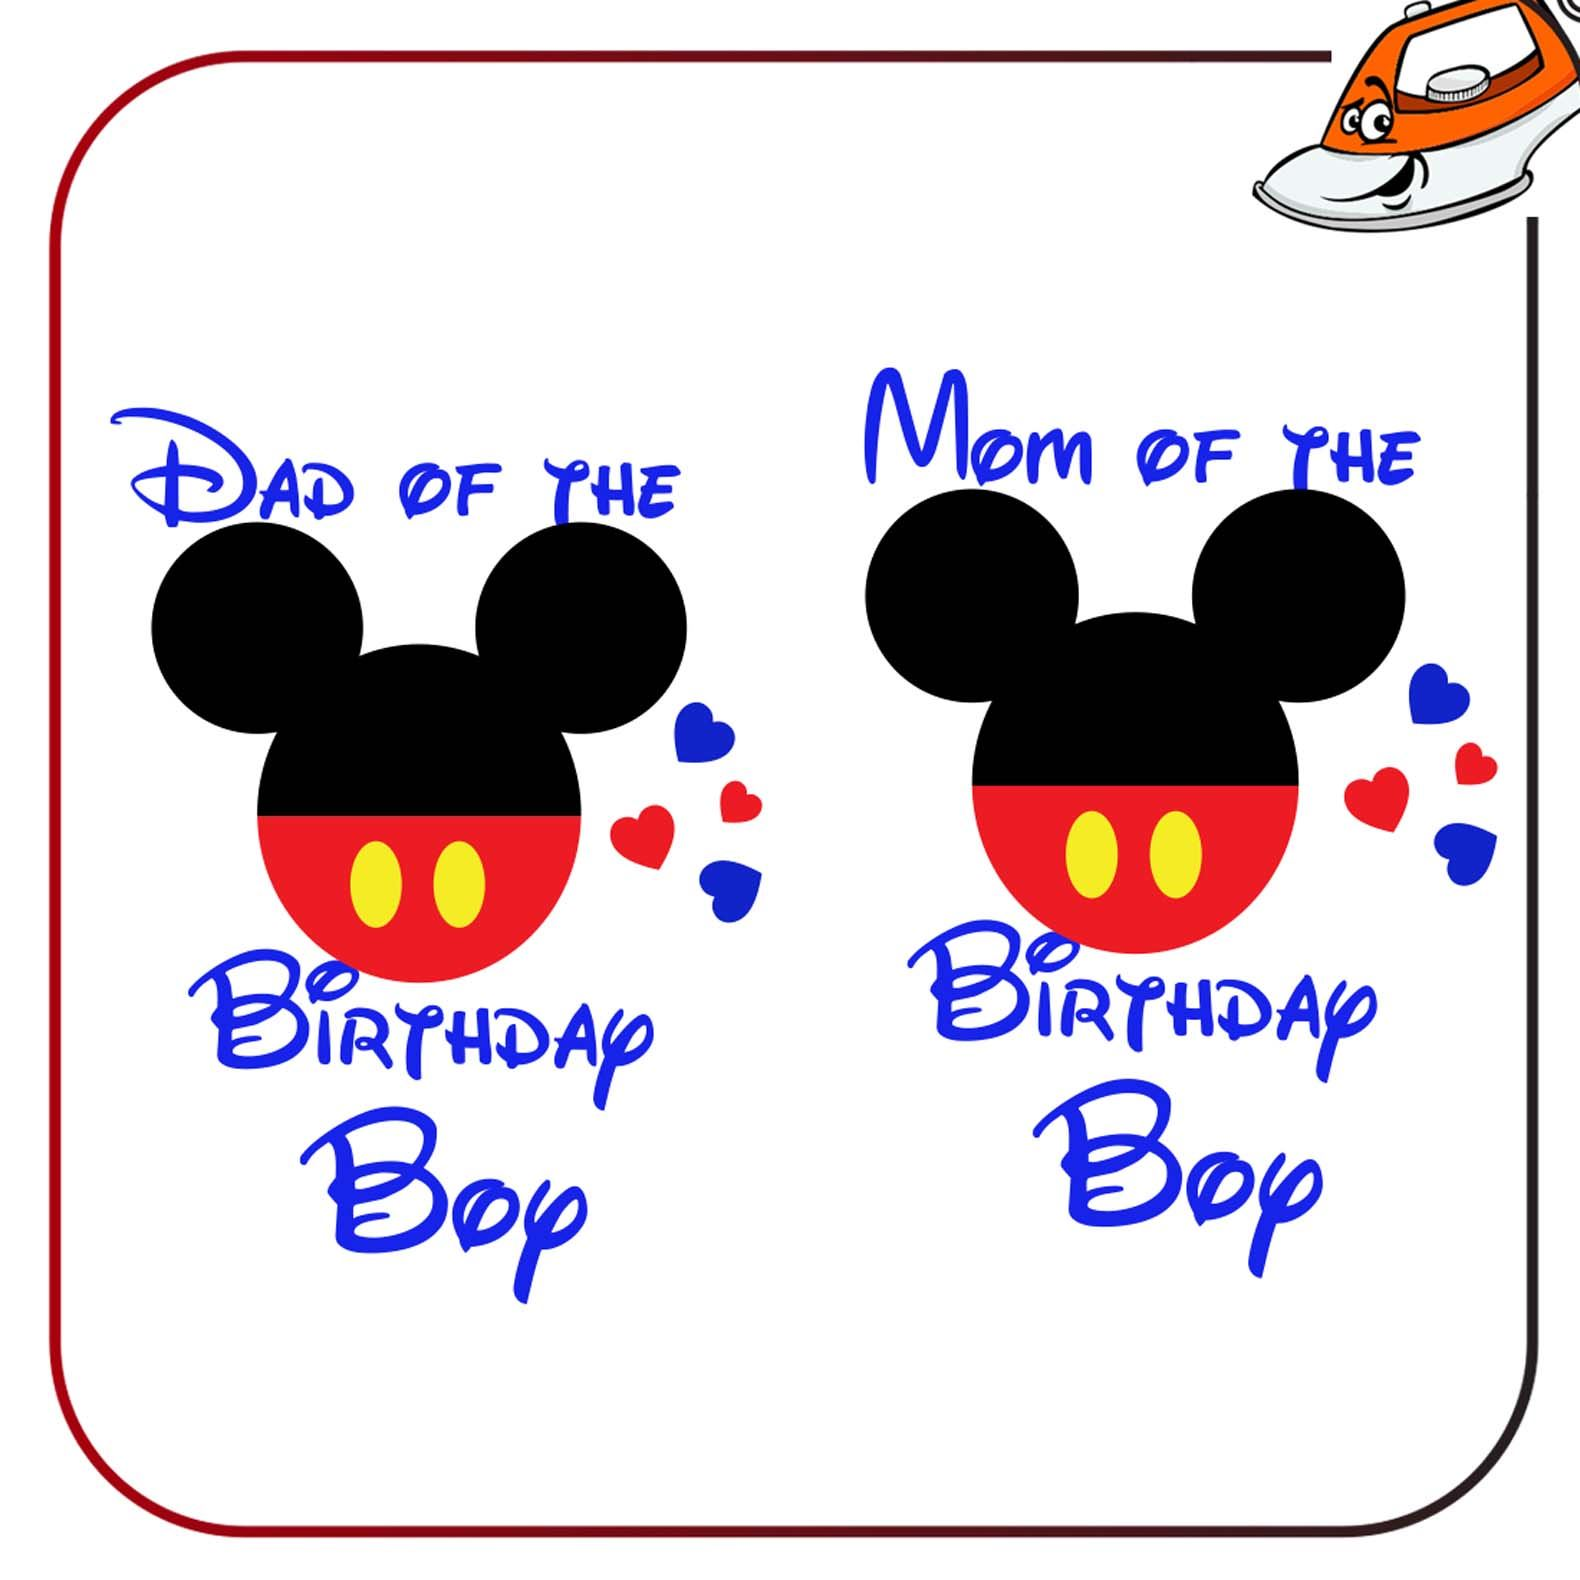 Details About Mom Dad Of The Birthday Boy Iron On T Shirt Transfer Vinyl Print Sticker Party